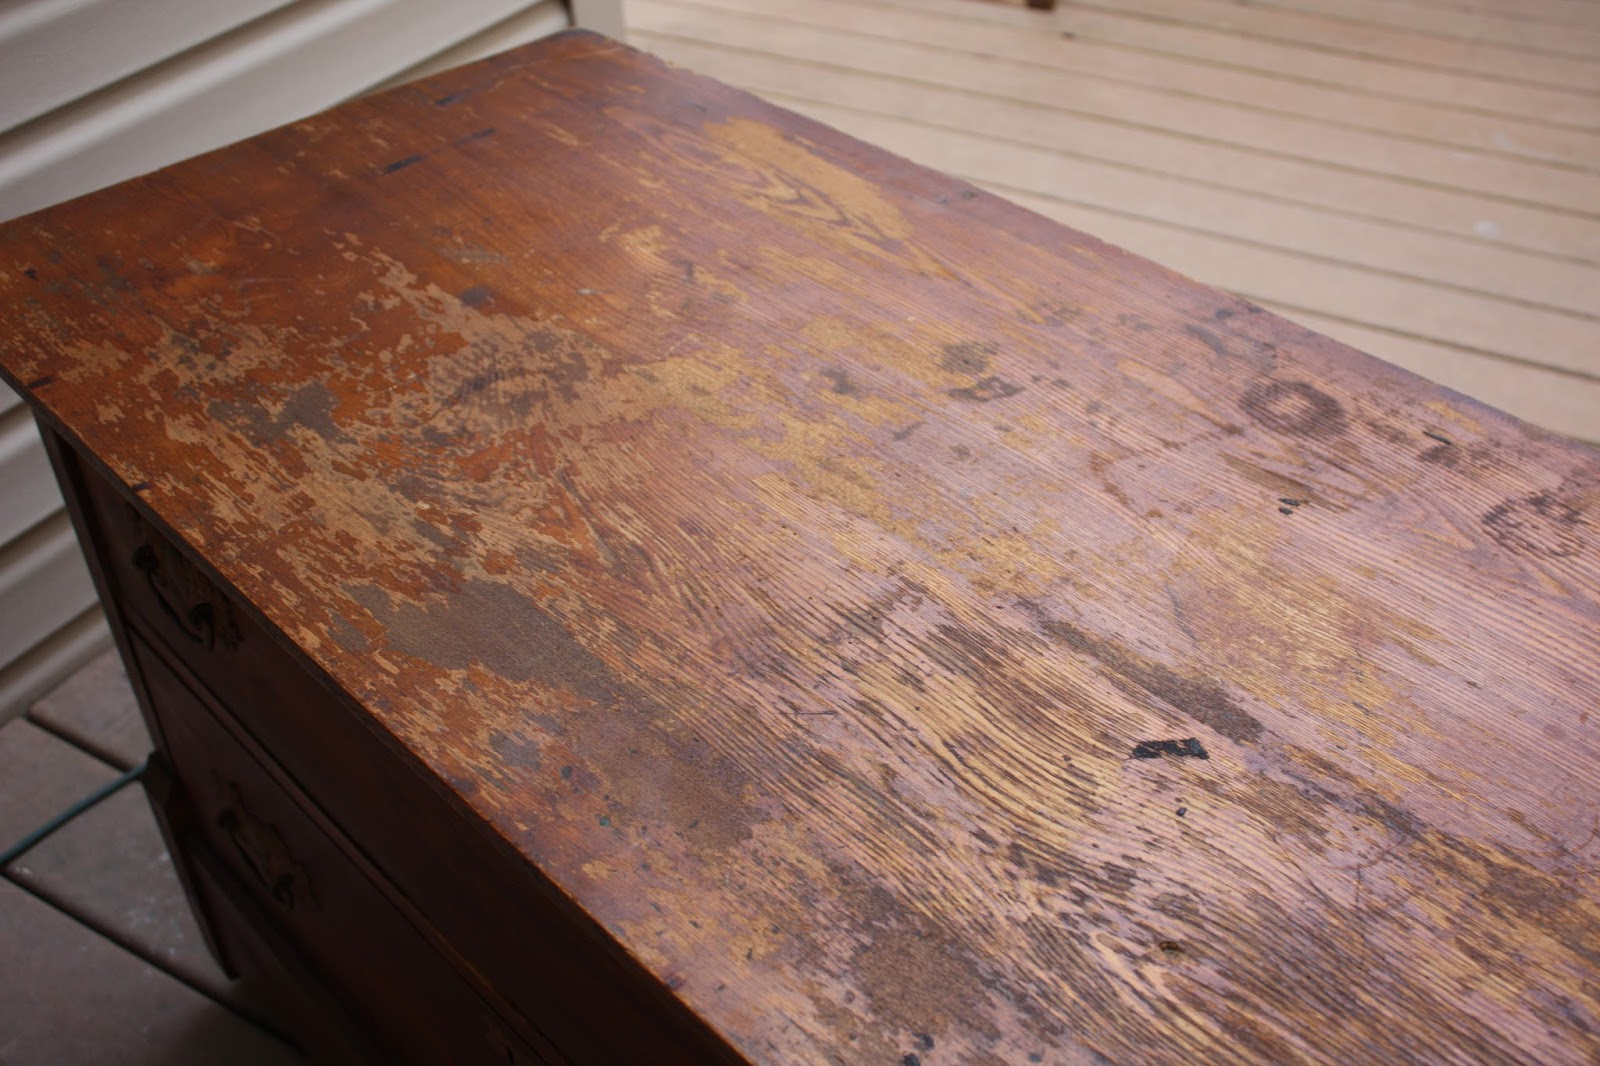 Antique dresser with poor finish